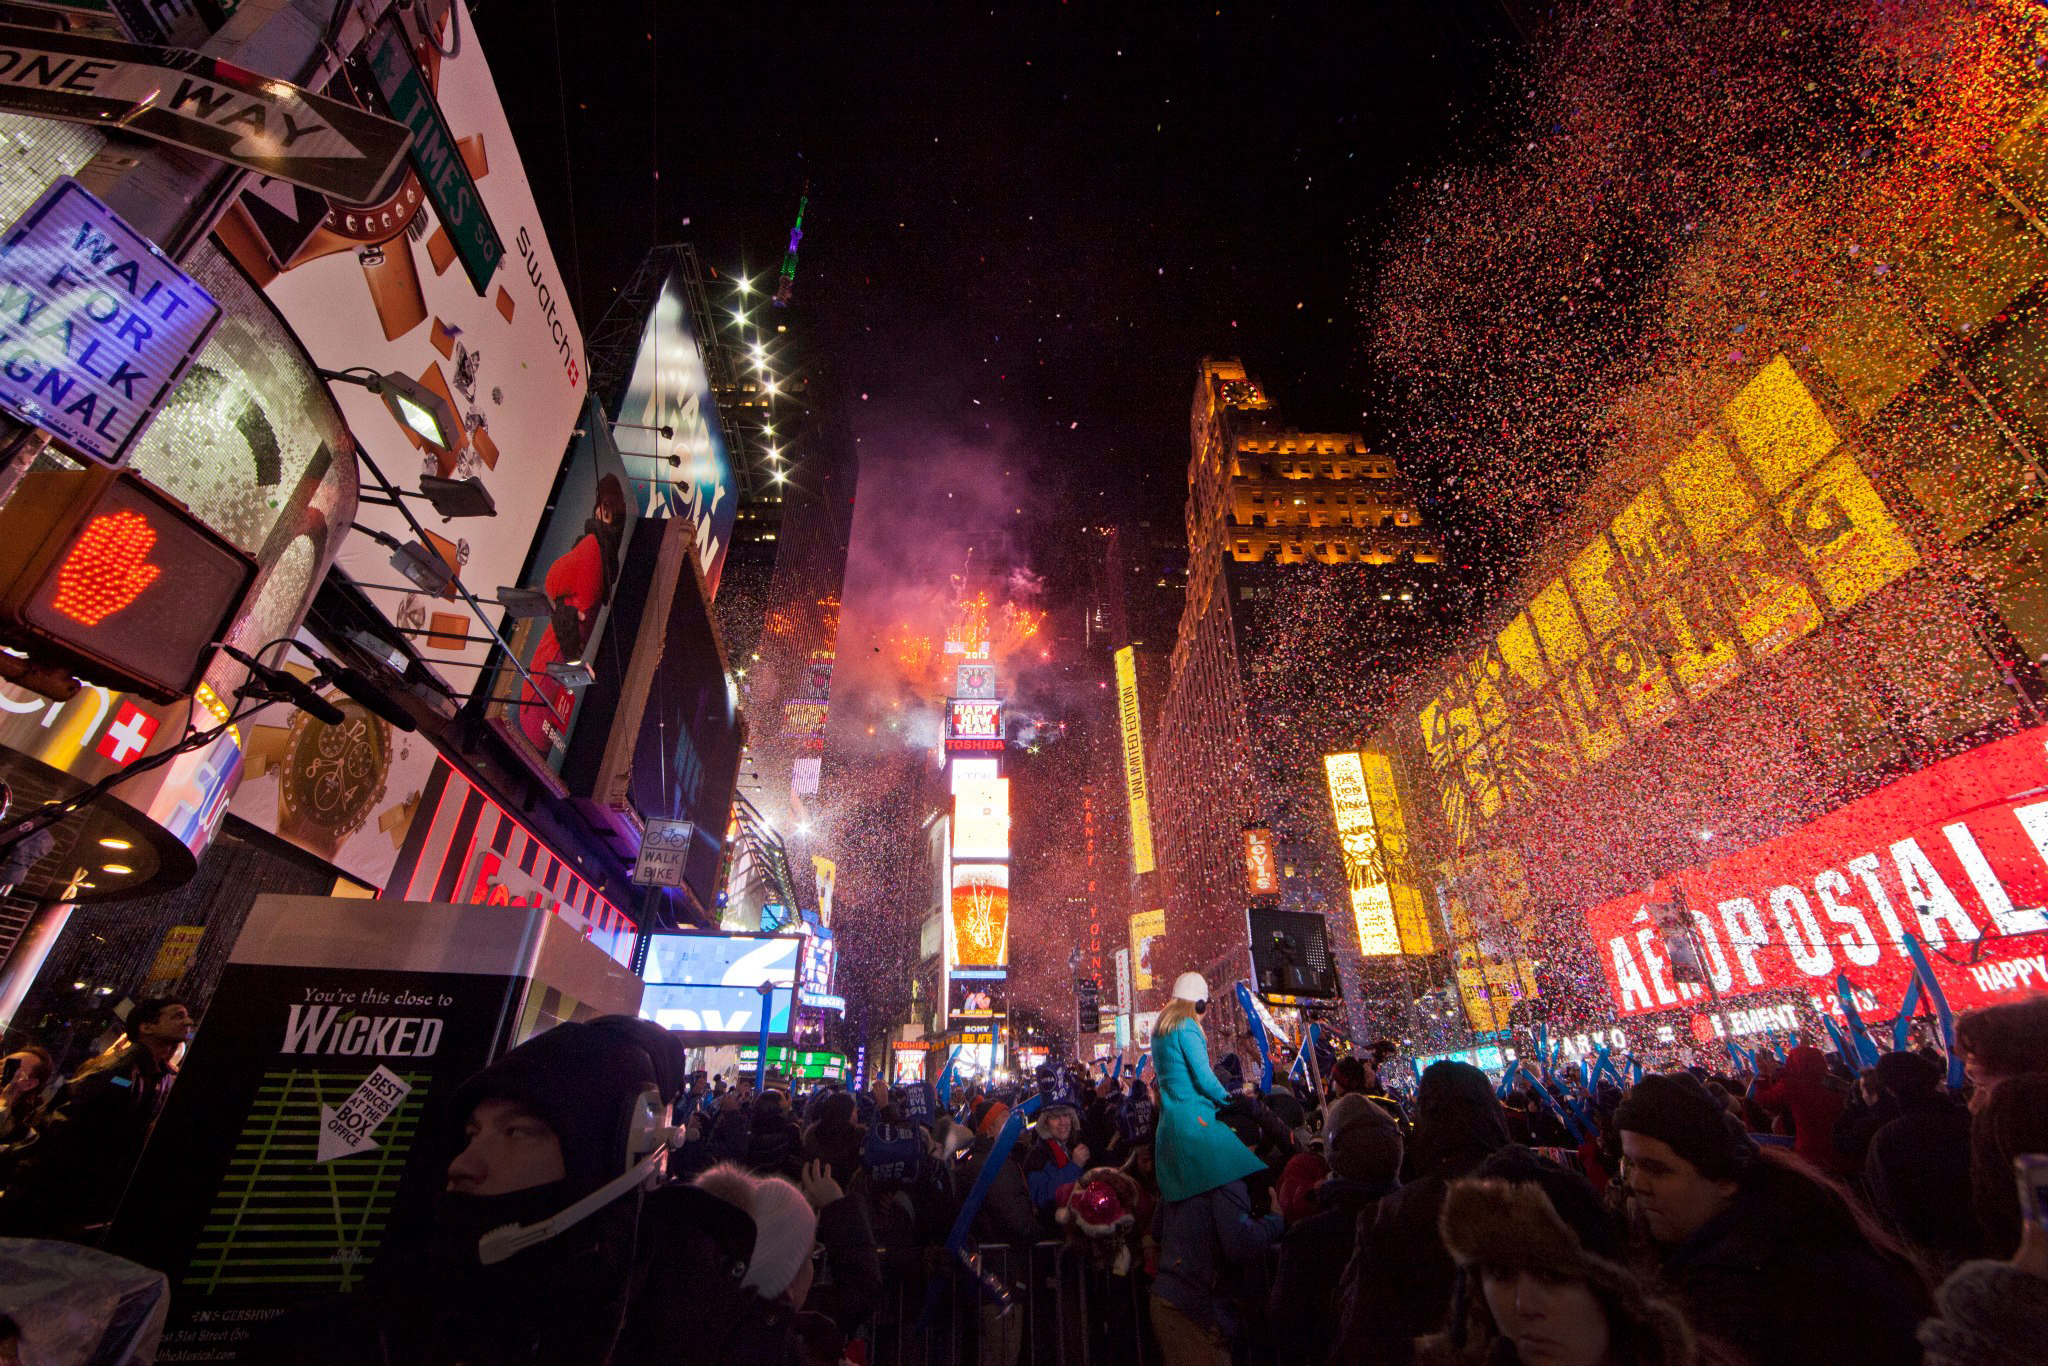 File:Working New Years Eve Social Media for NBC (9234114888).jpg - Wikimedia Commons